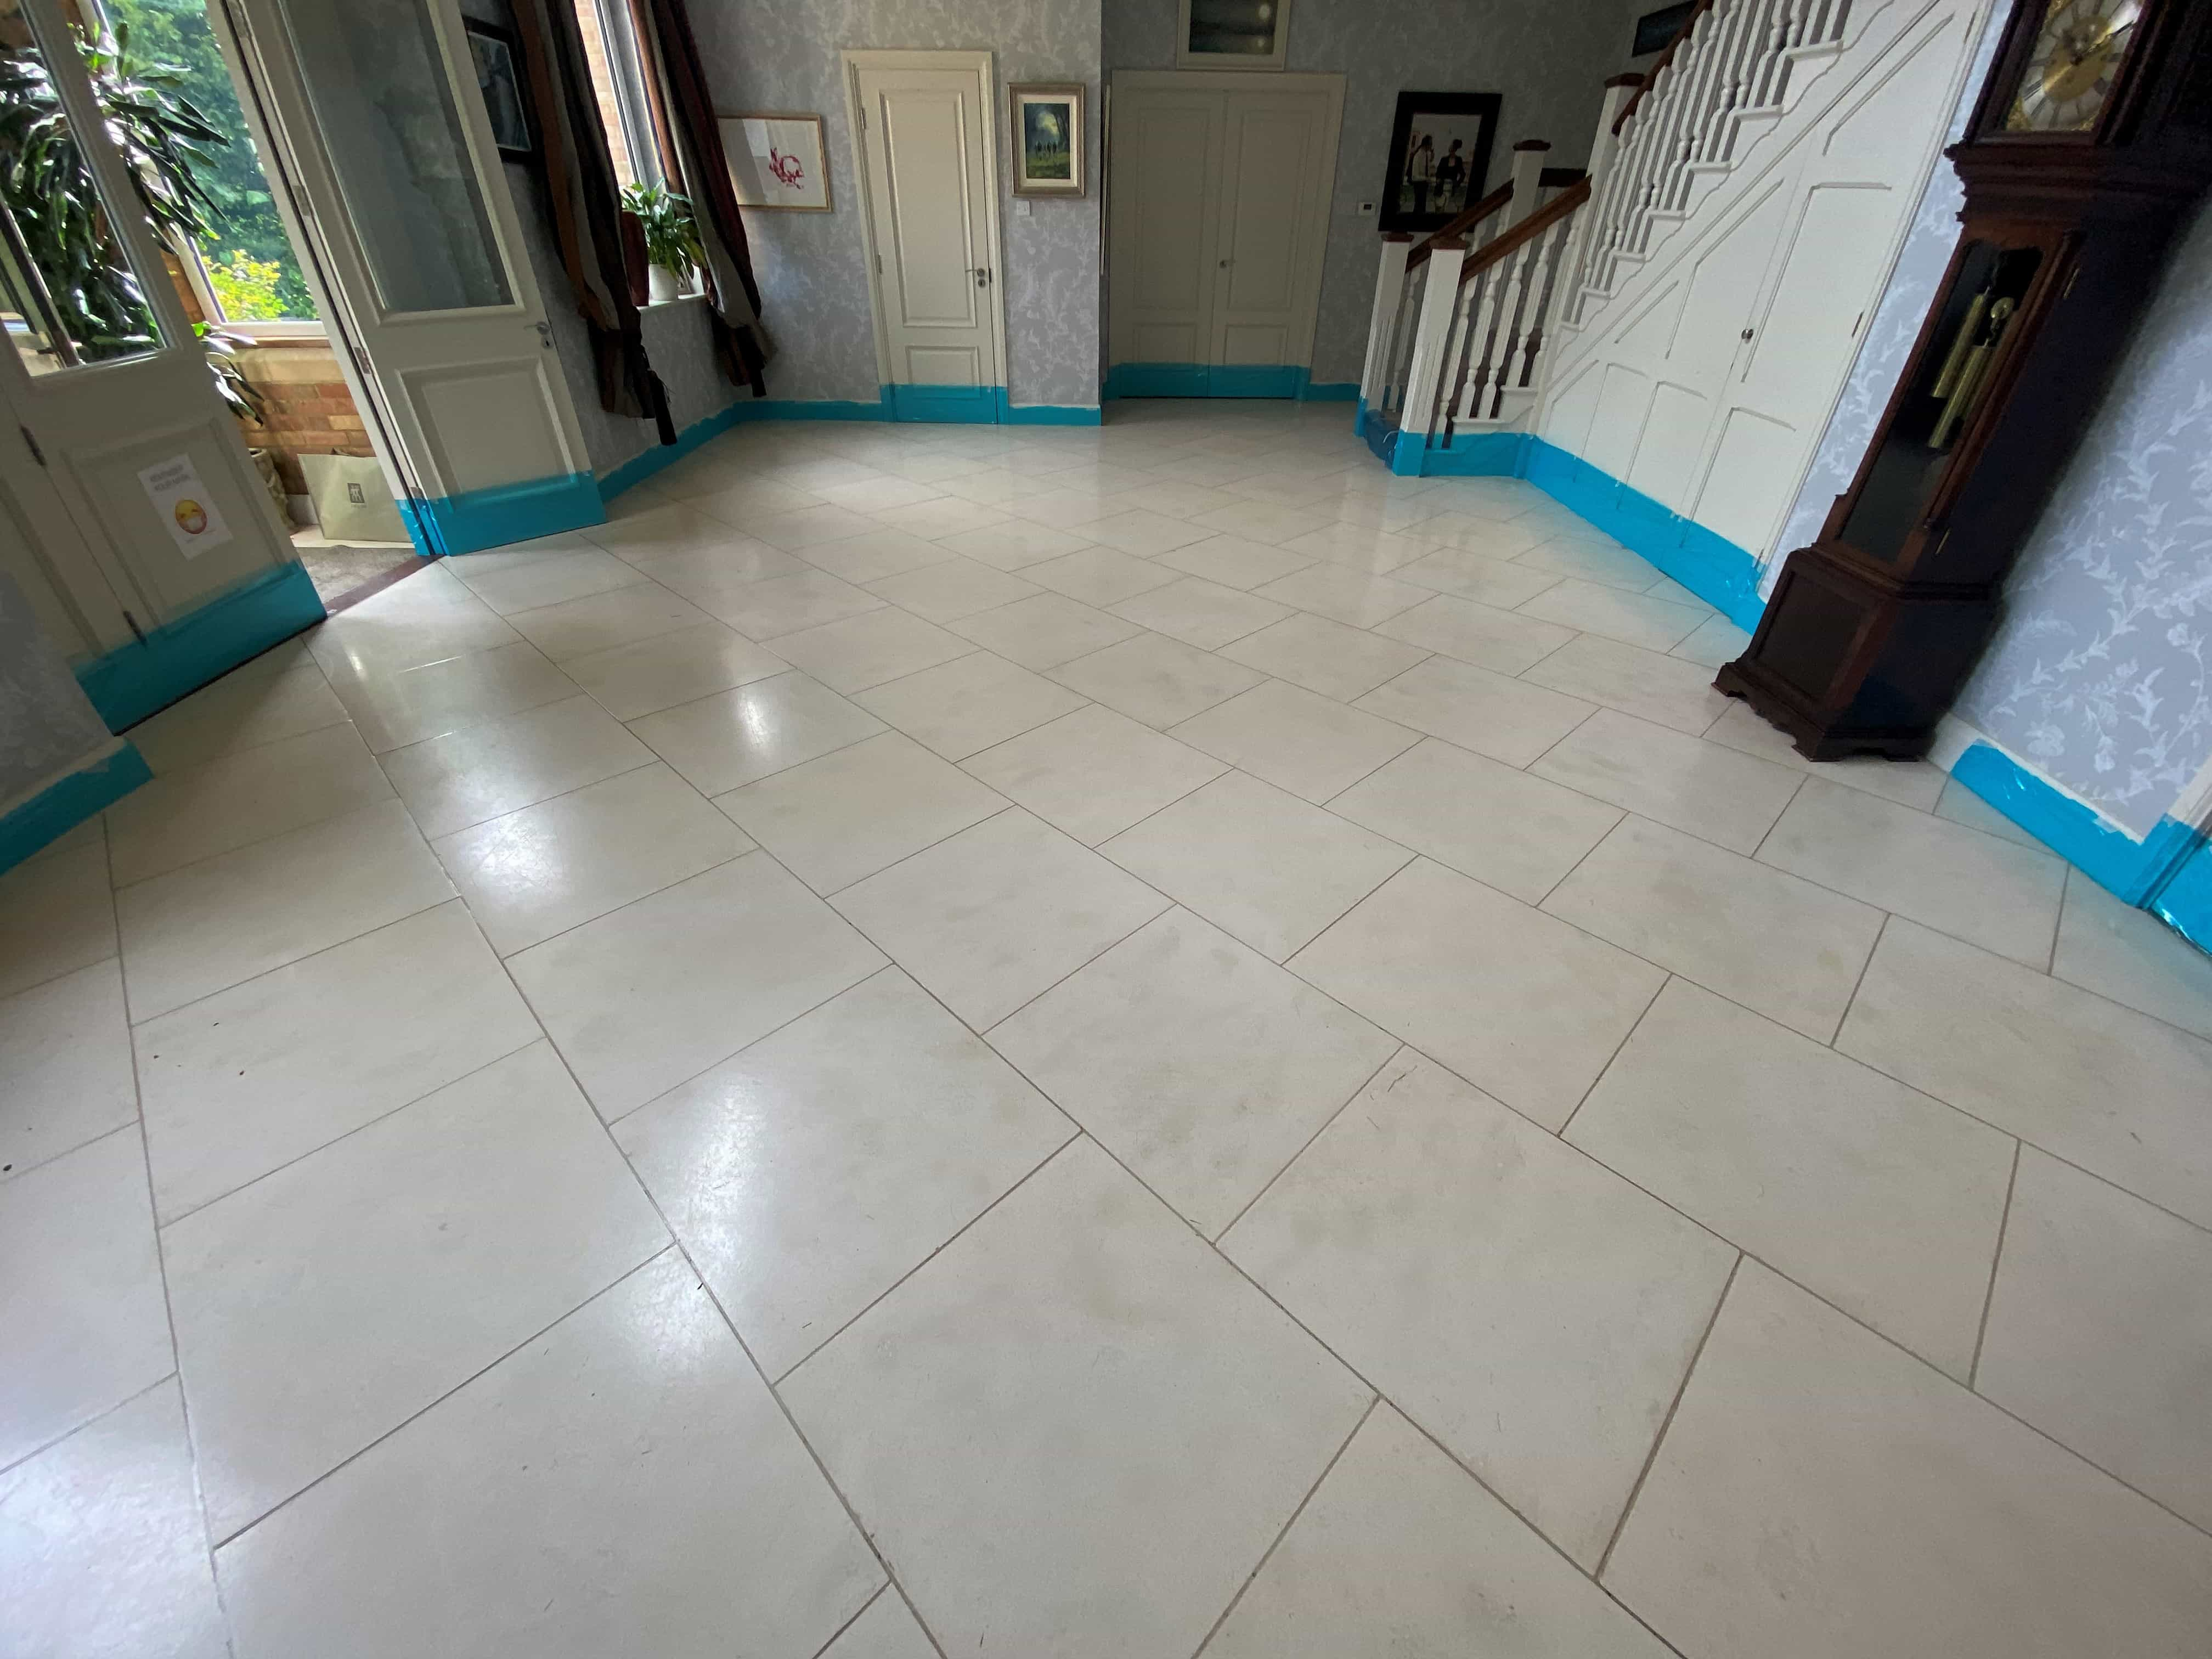 Polished Limestone Floor Before Cleaning Toft